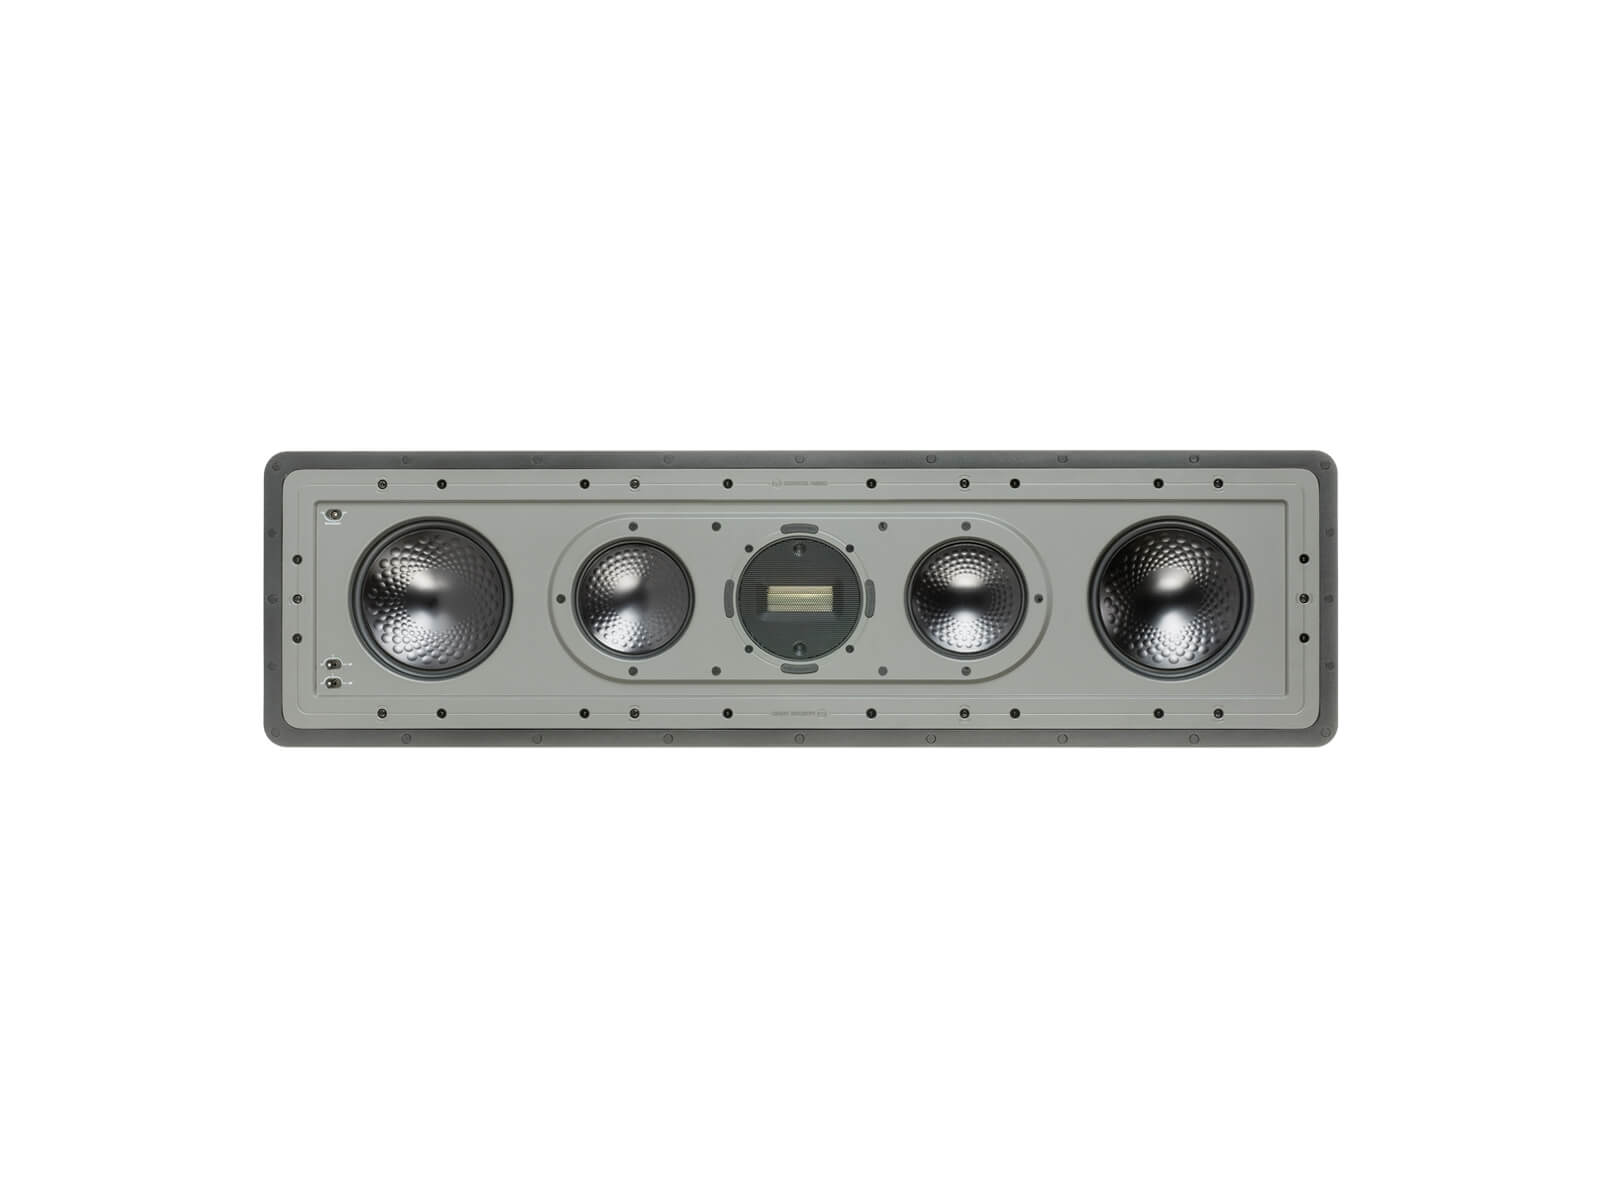 Controlled Performance CP-IW460X, horizontal front-on, grille-less in-wall speakers.